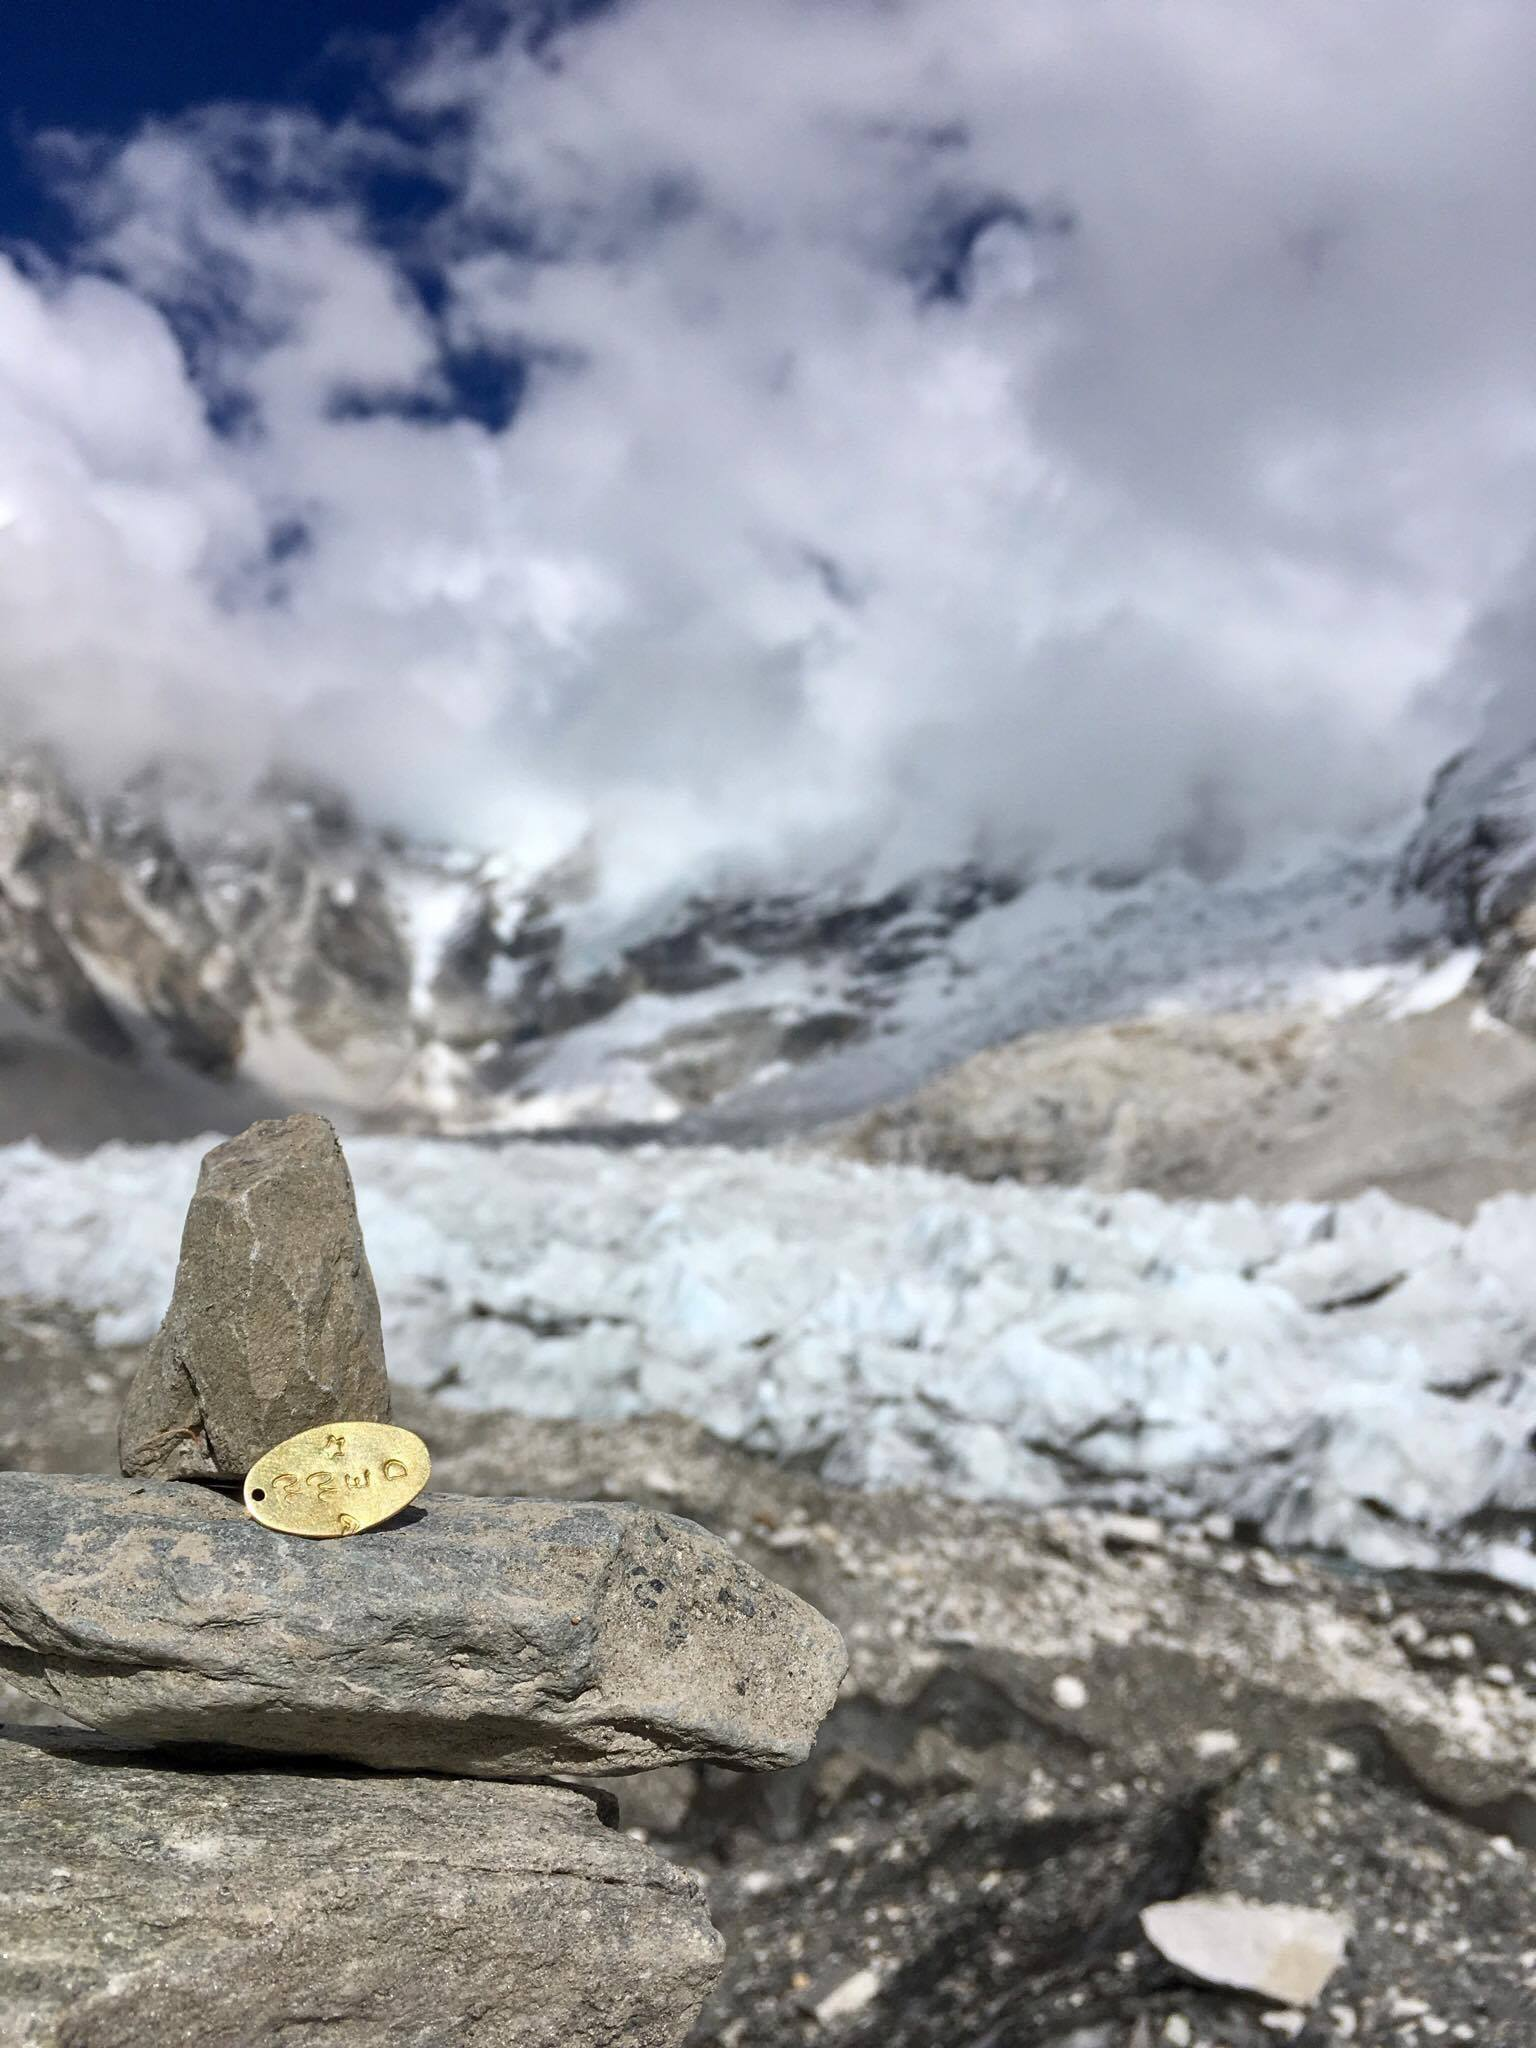 Ellen's charm atop Mt. Everest. Photo Credit: Jakob Muhic